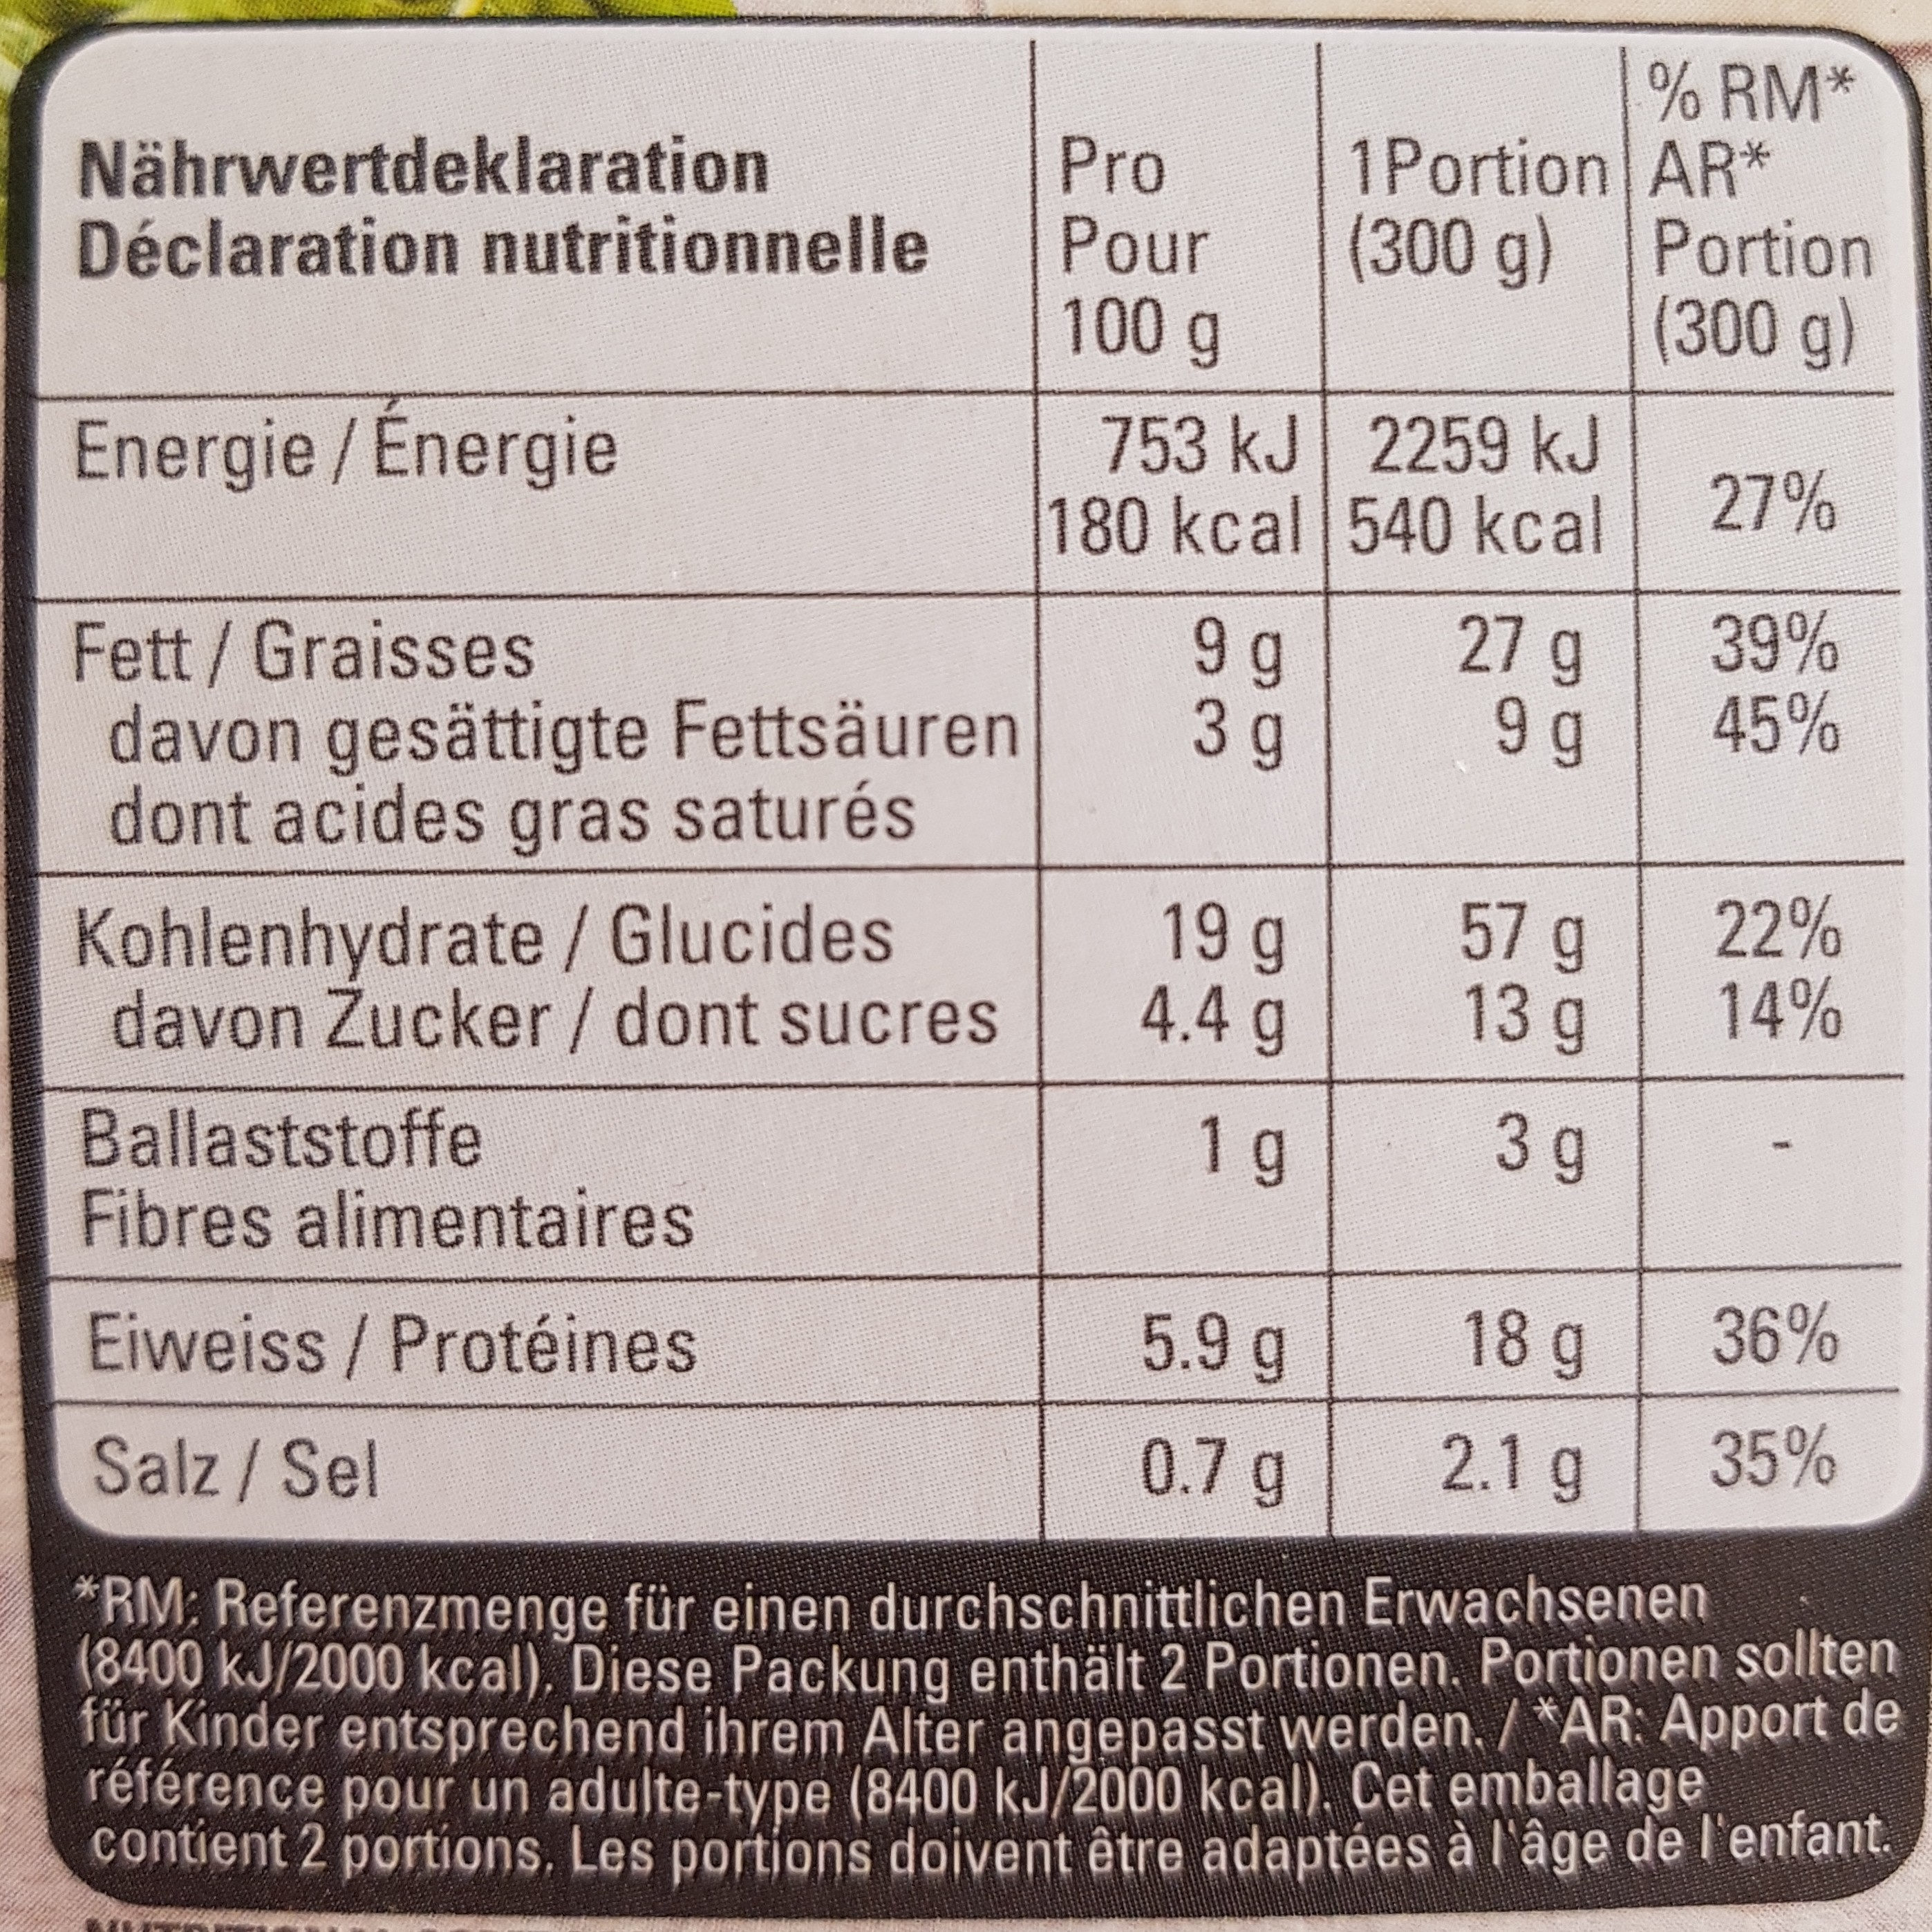 Cannelloni Fiorentina - Nutrition facts - fr